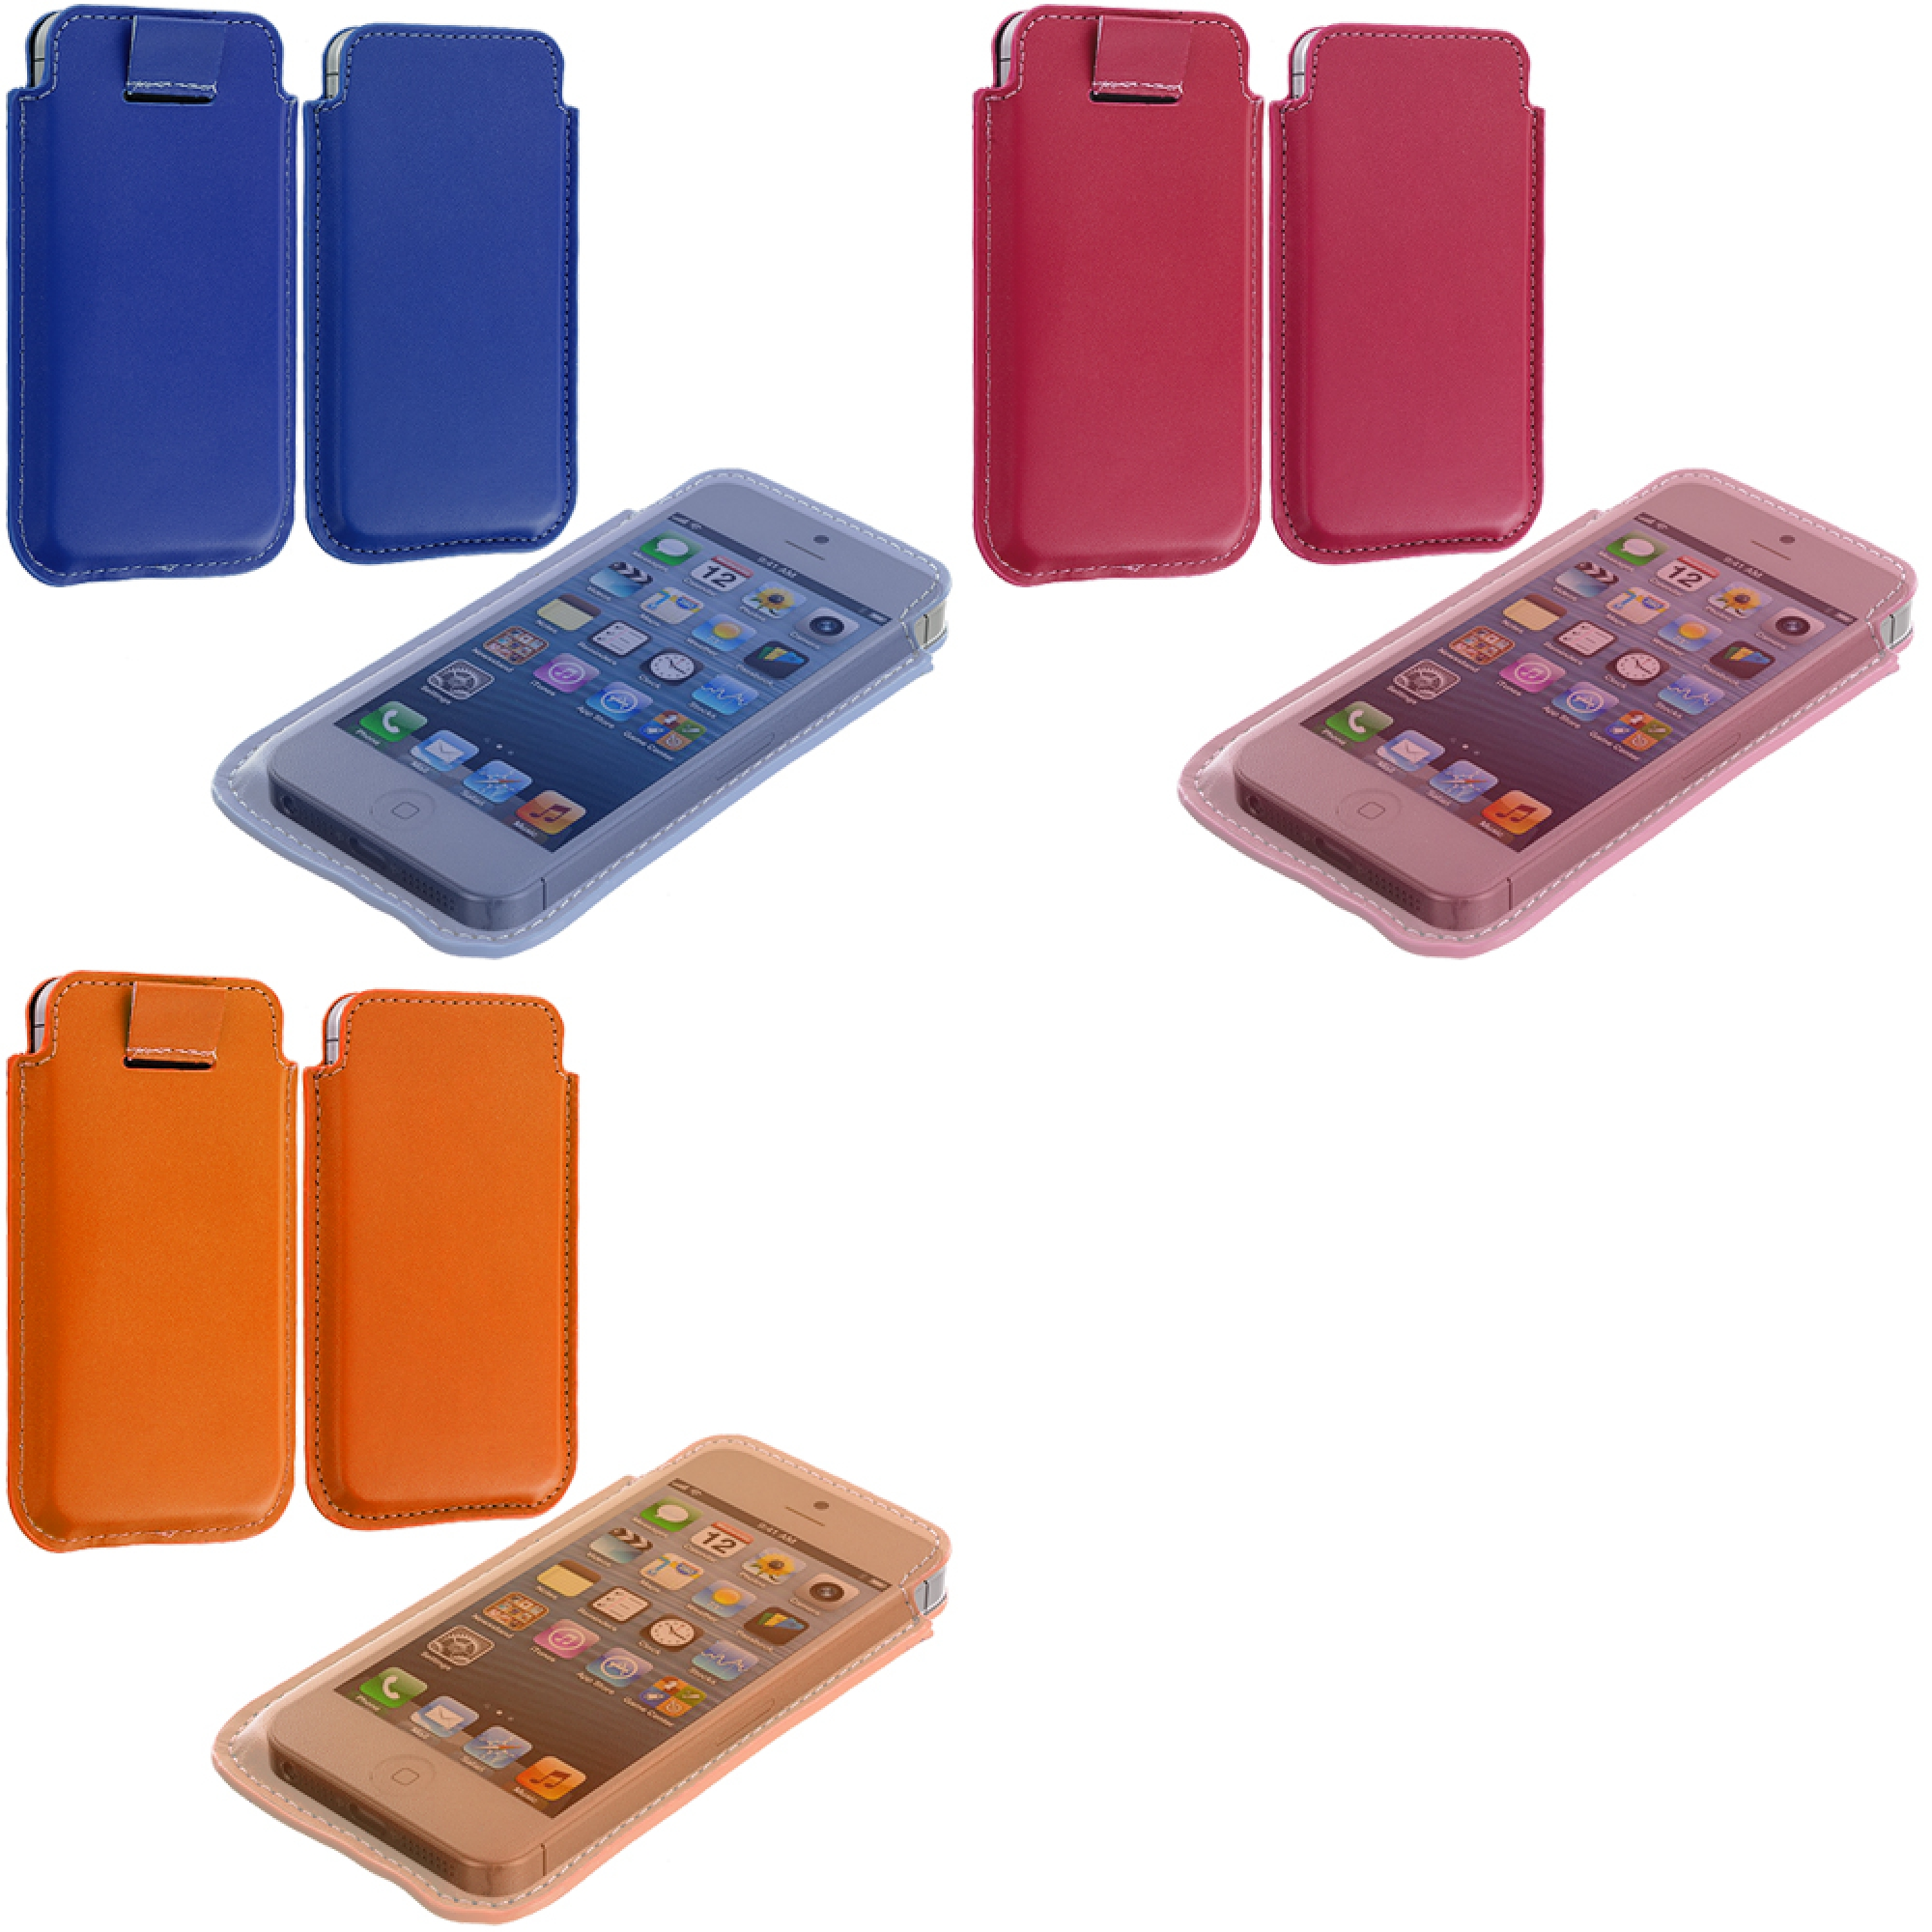 Apple iPhone 5/5S/SE Combo Pack : Blue Sleeve Pouch